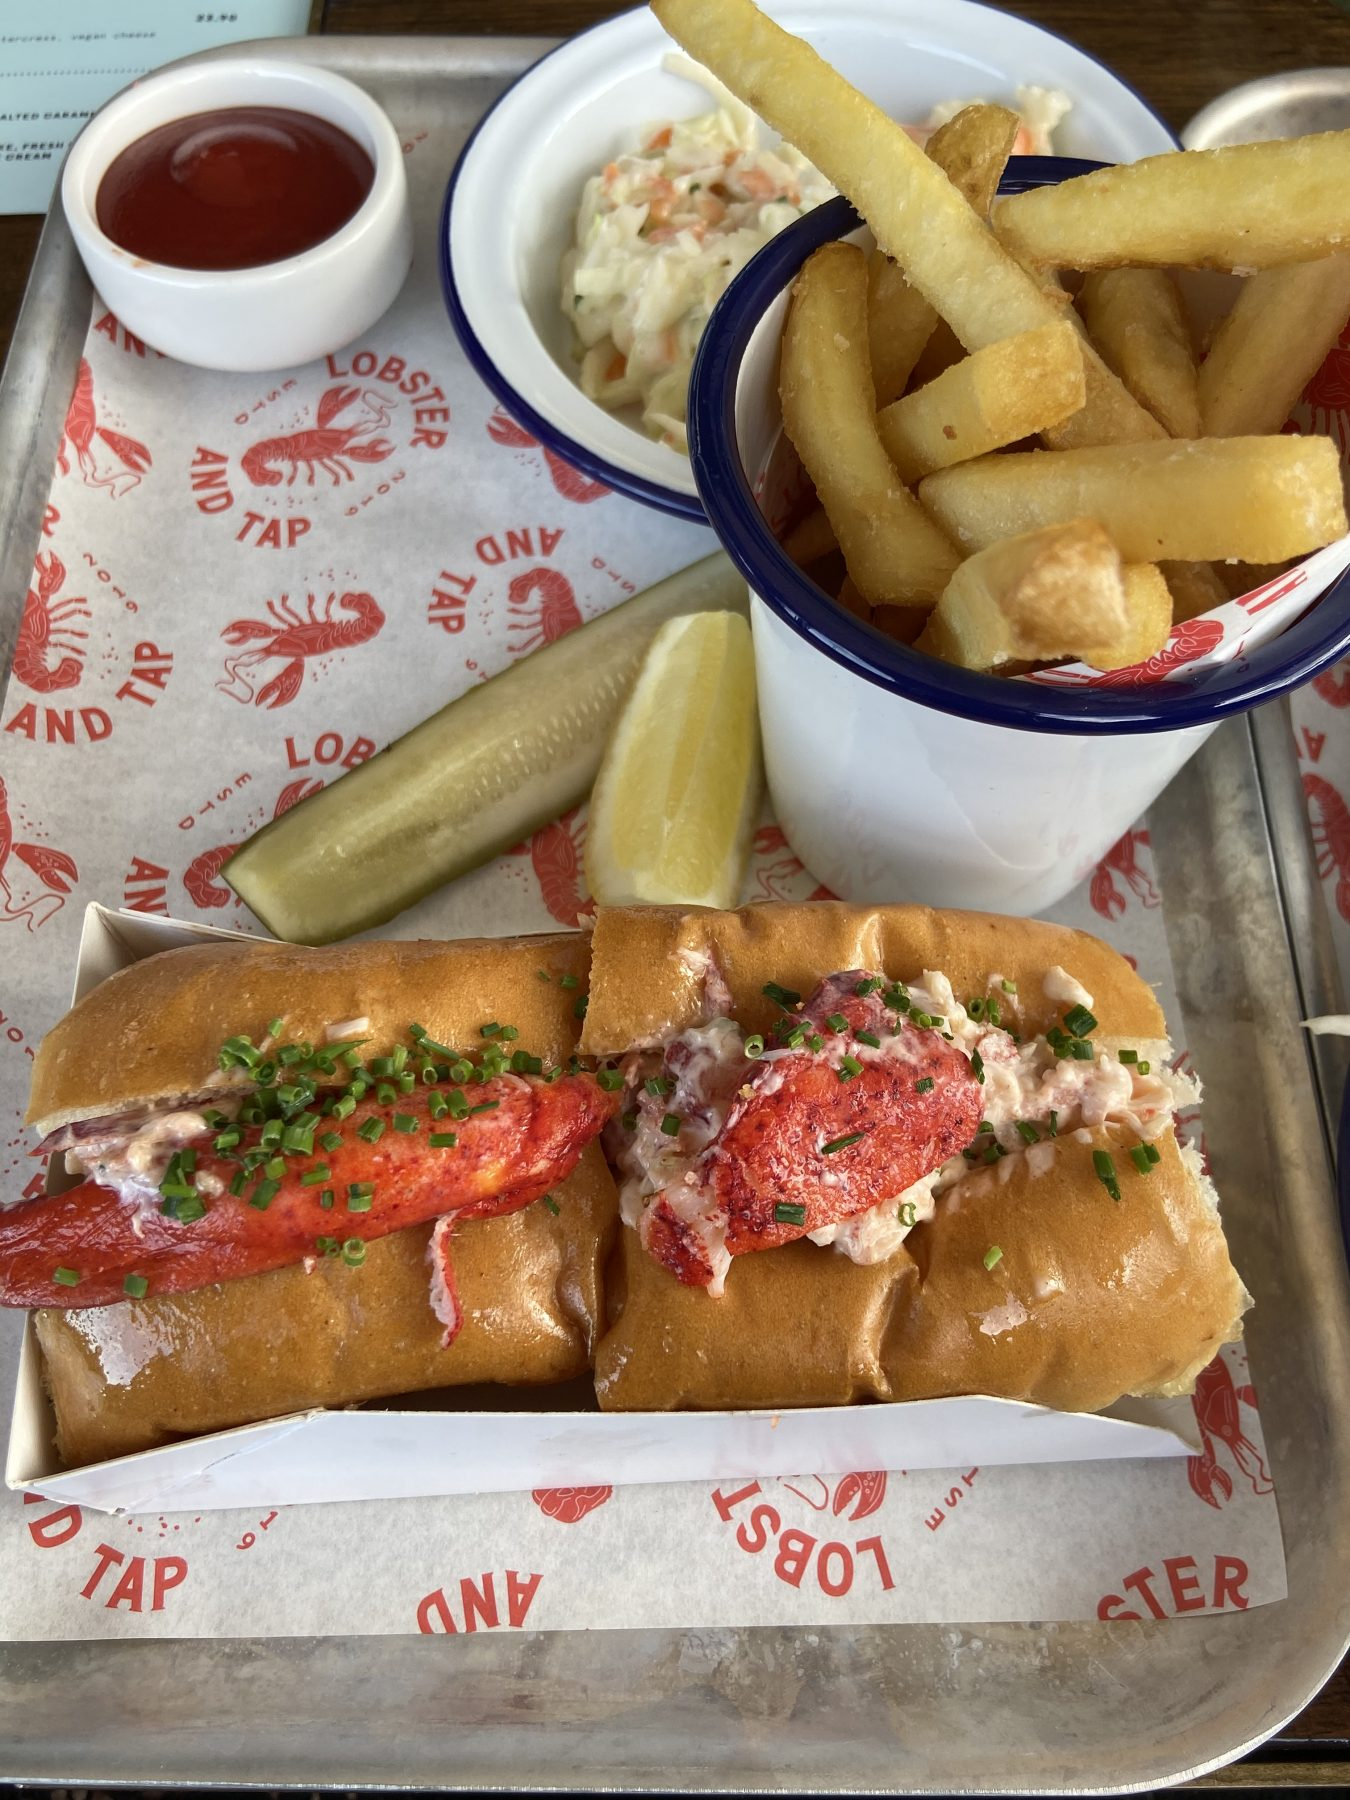 Lobster & Wagyu Chips, Coleslaw & Classic Lobster Roll